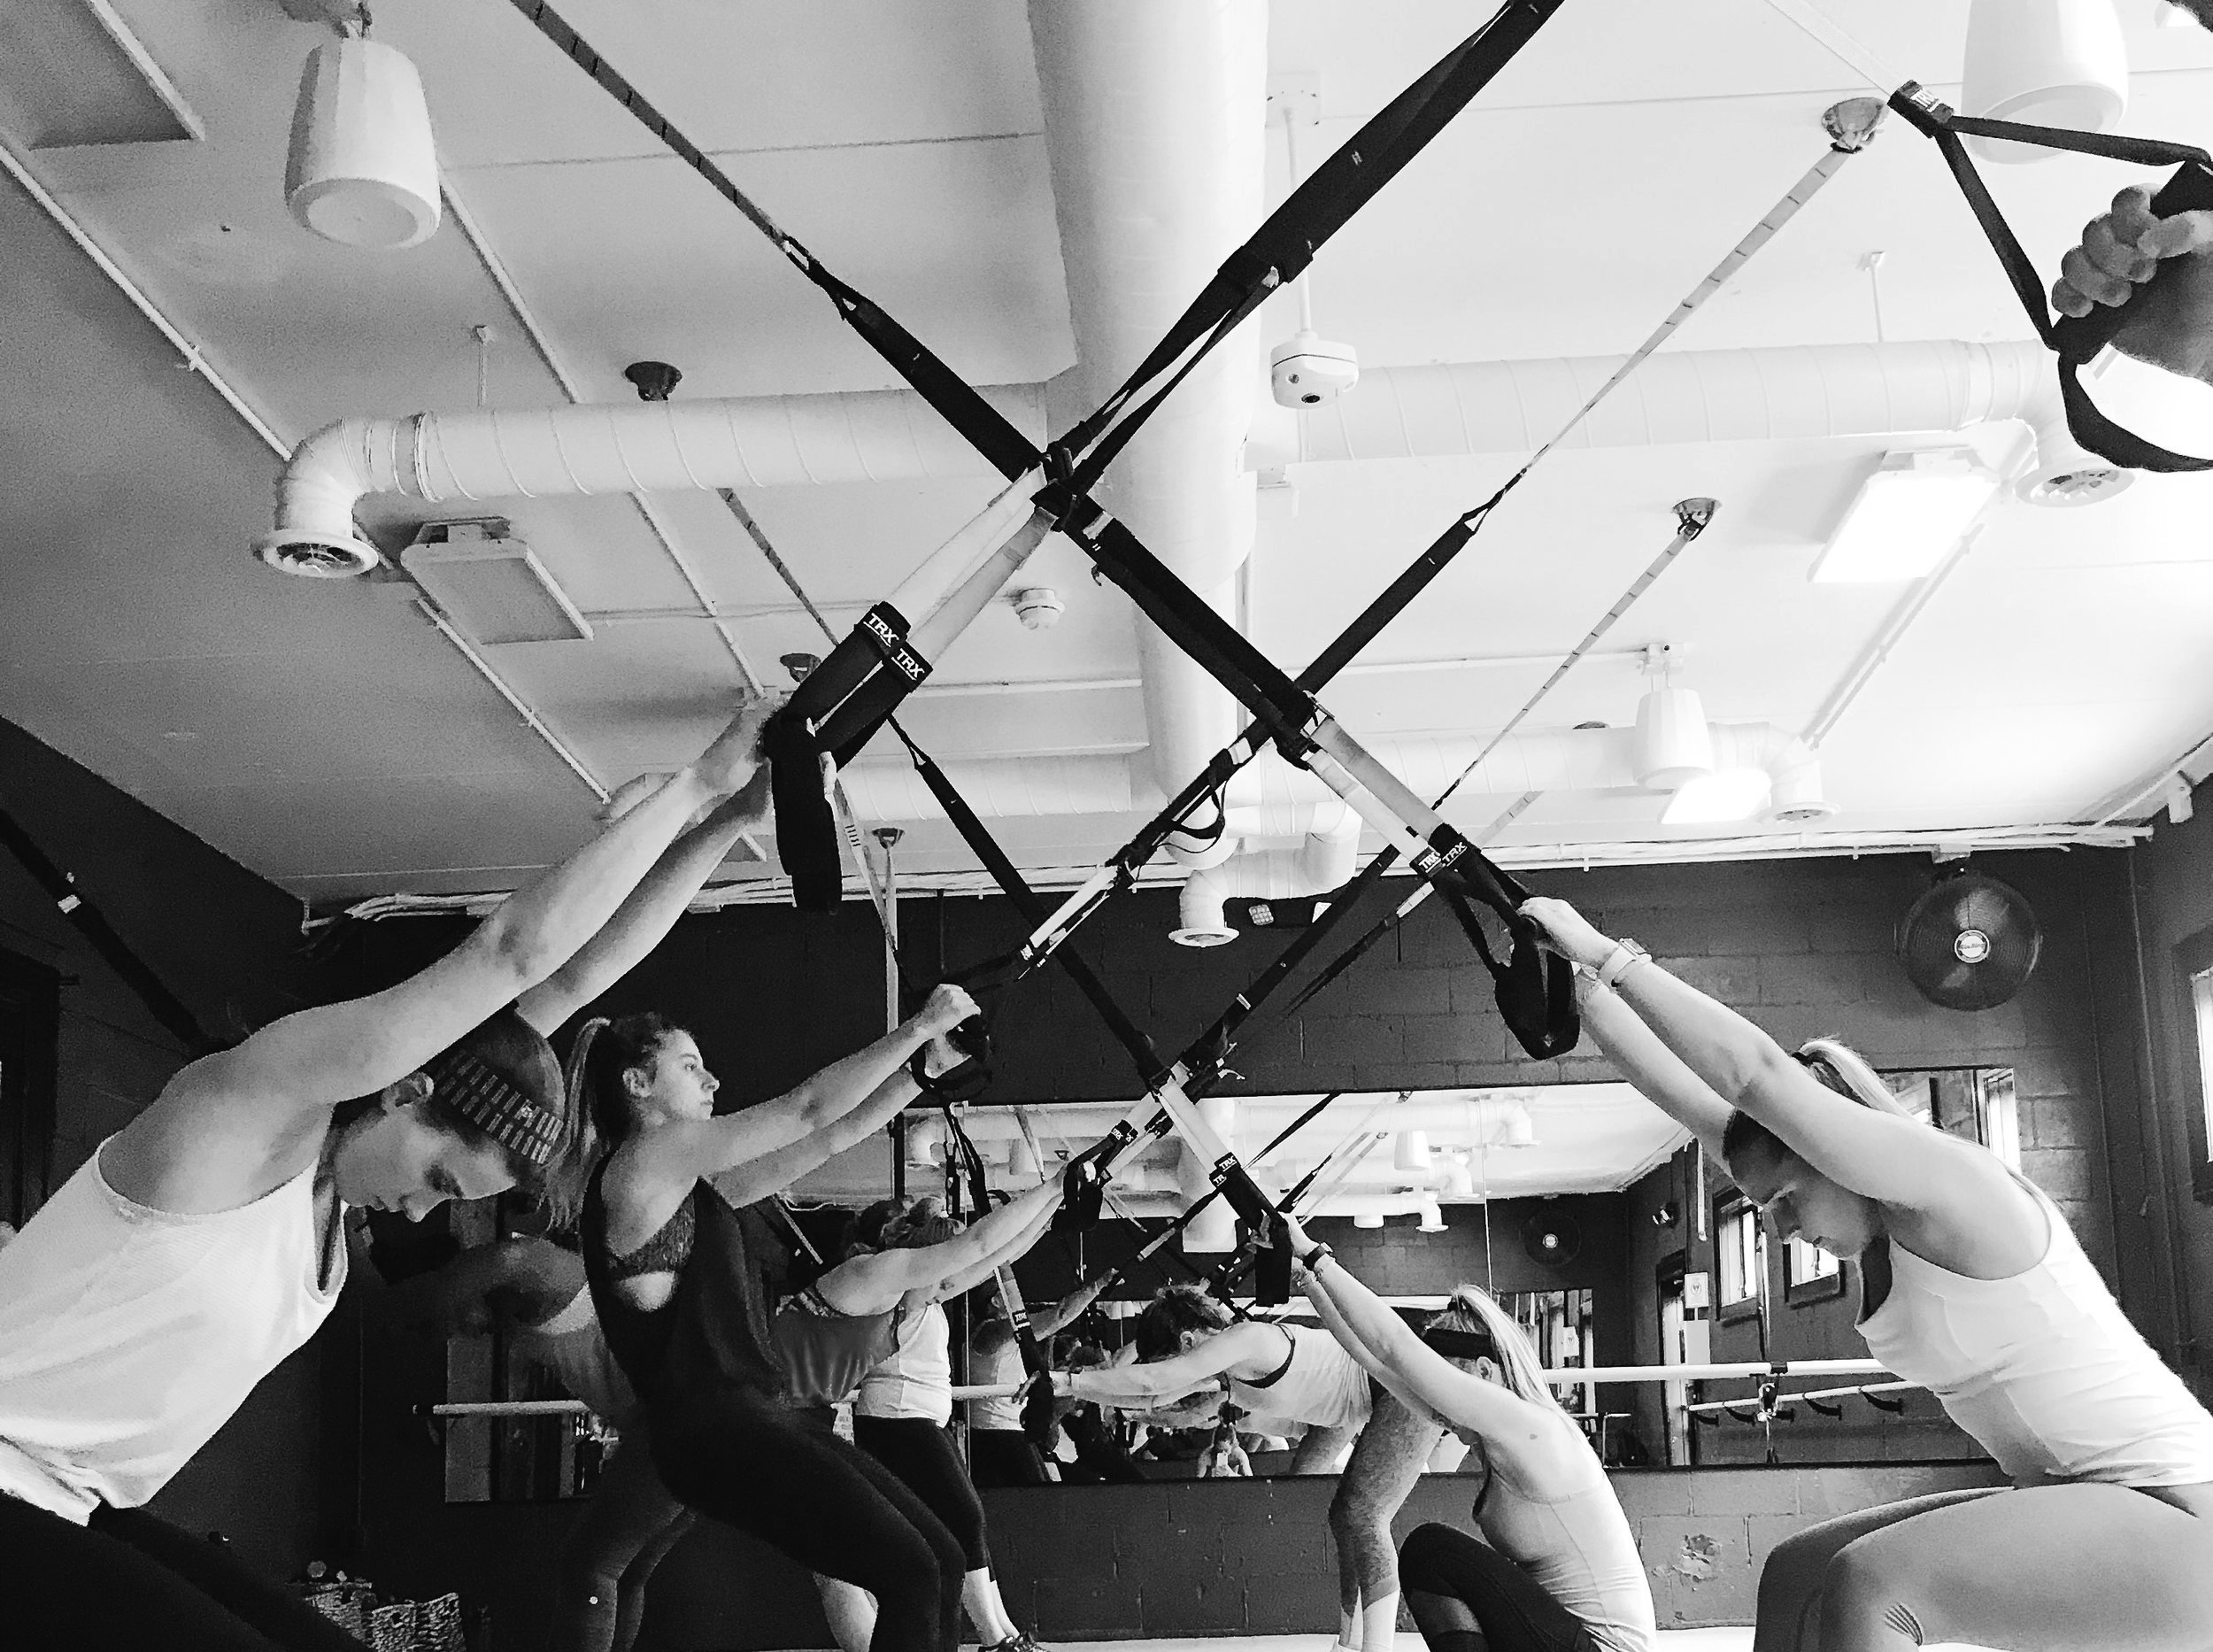 TRX TOTAL BODY - ALL TRX! Low-impact suspension training.